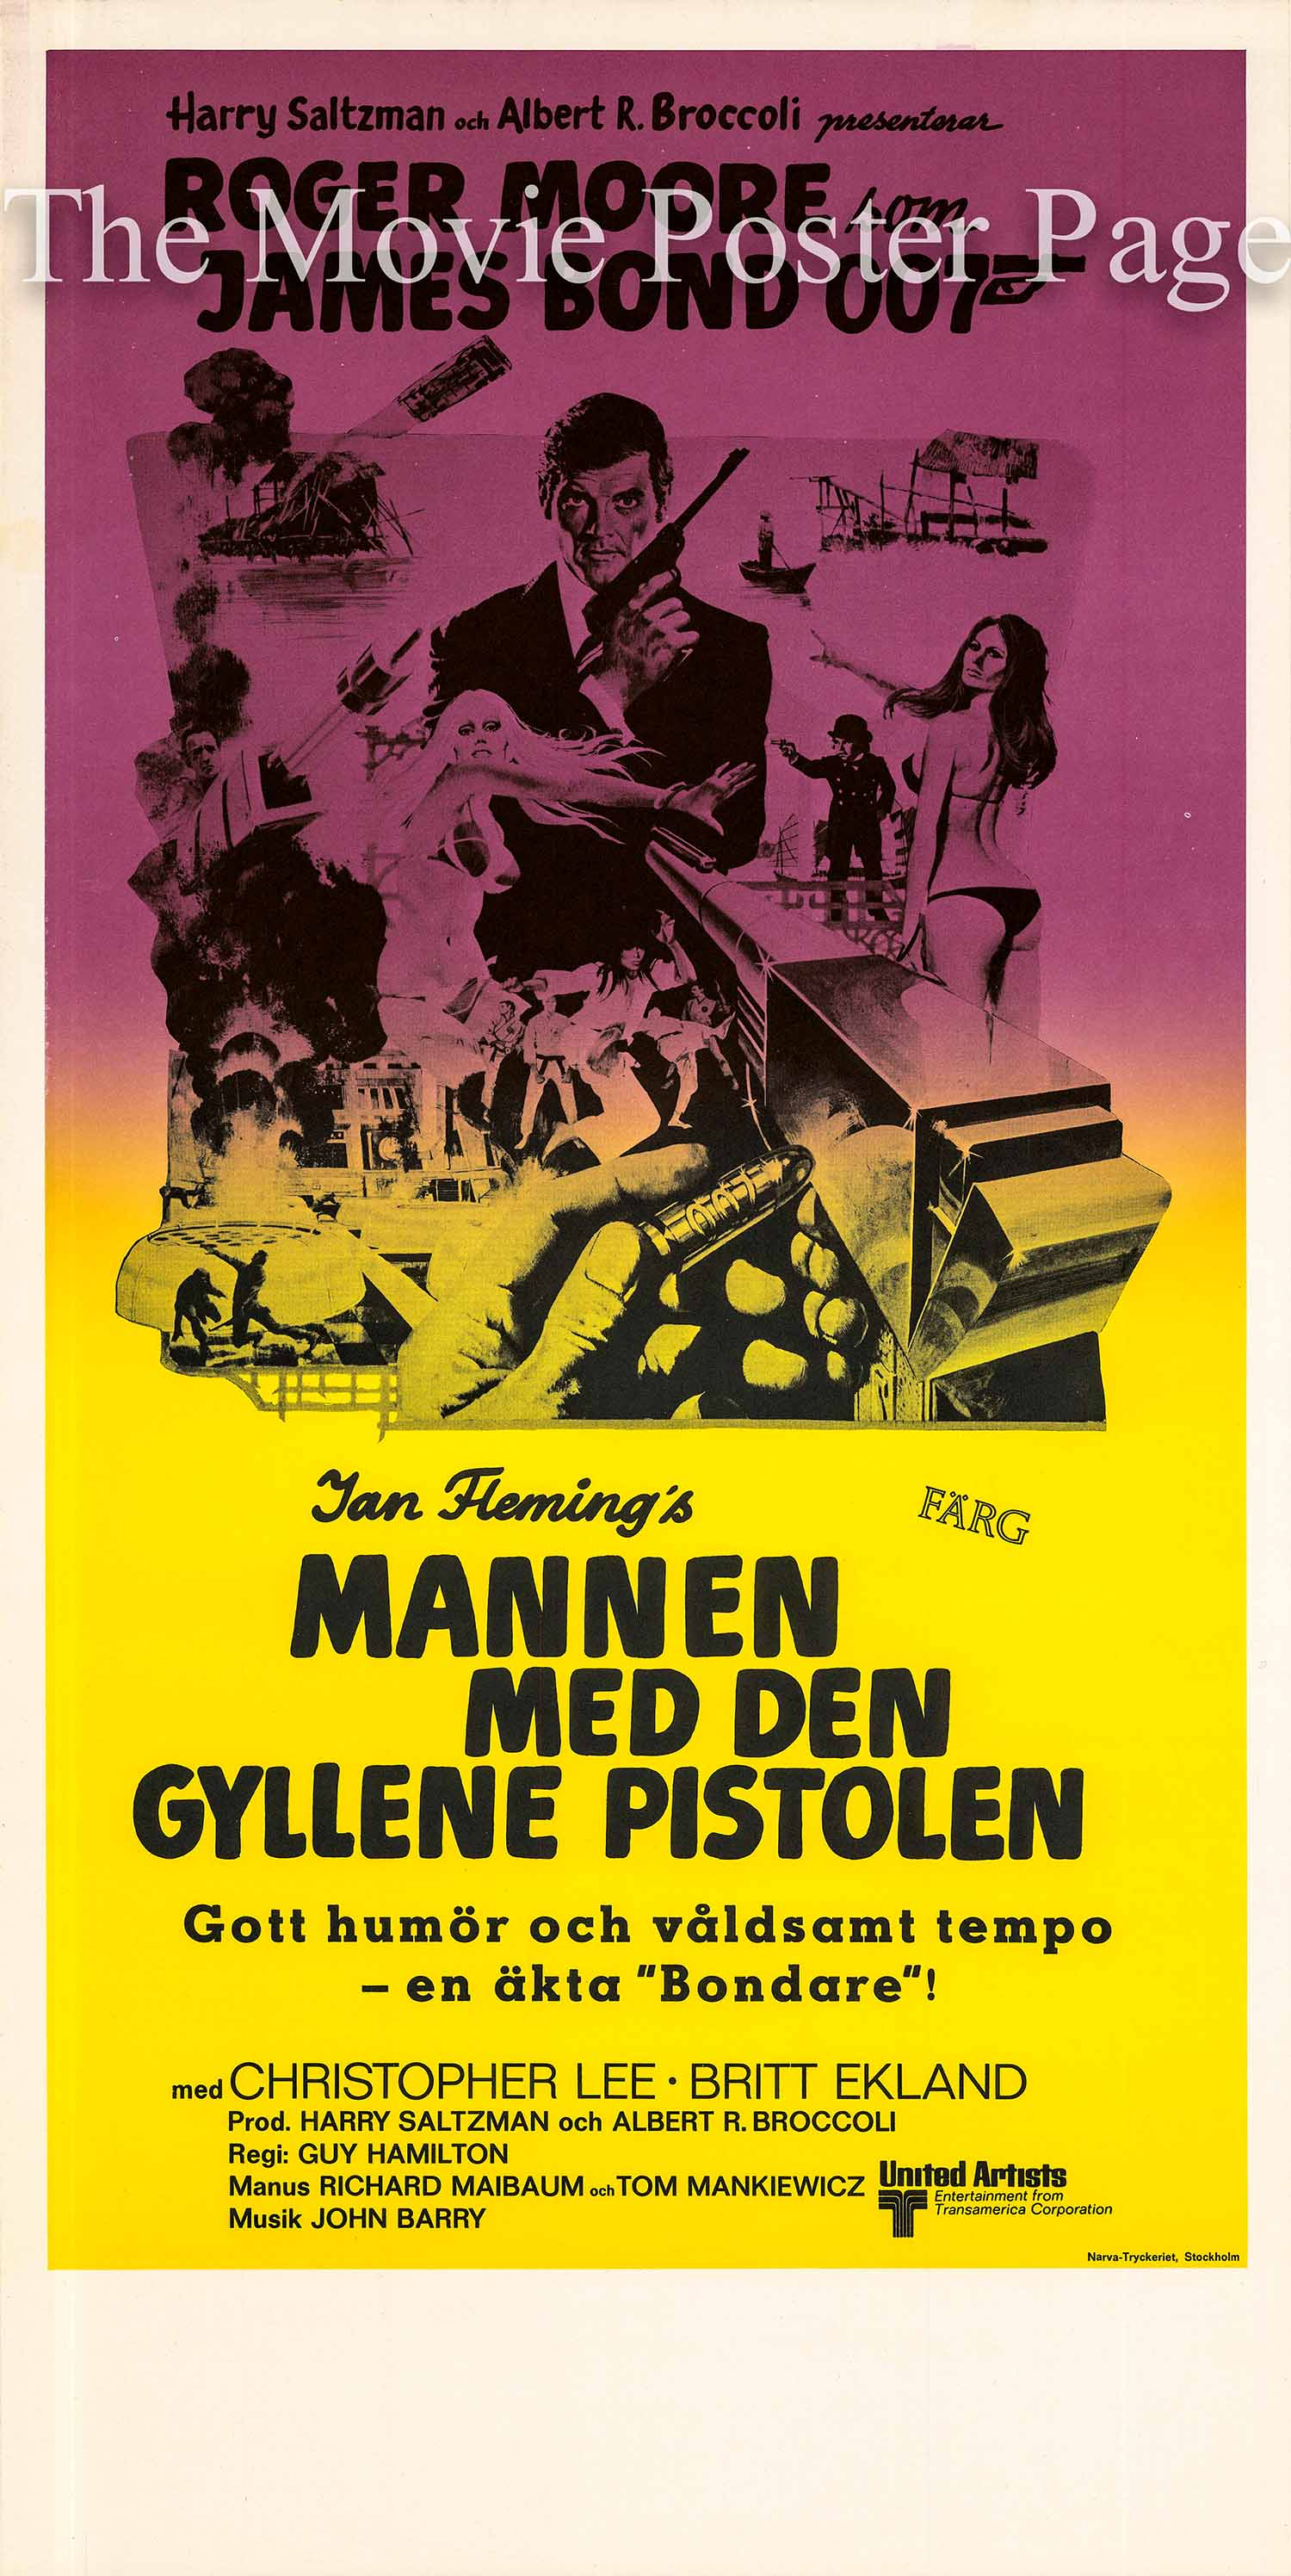 Pictured is a Swedish insert poster made to promote the 1974 Guy Hamilton film The Man with the Golden Gun starring Roger Moore as James Bond.